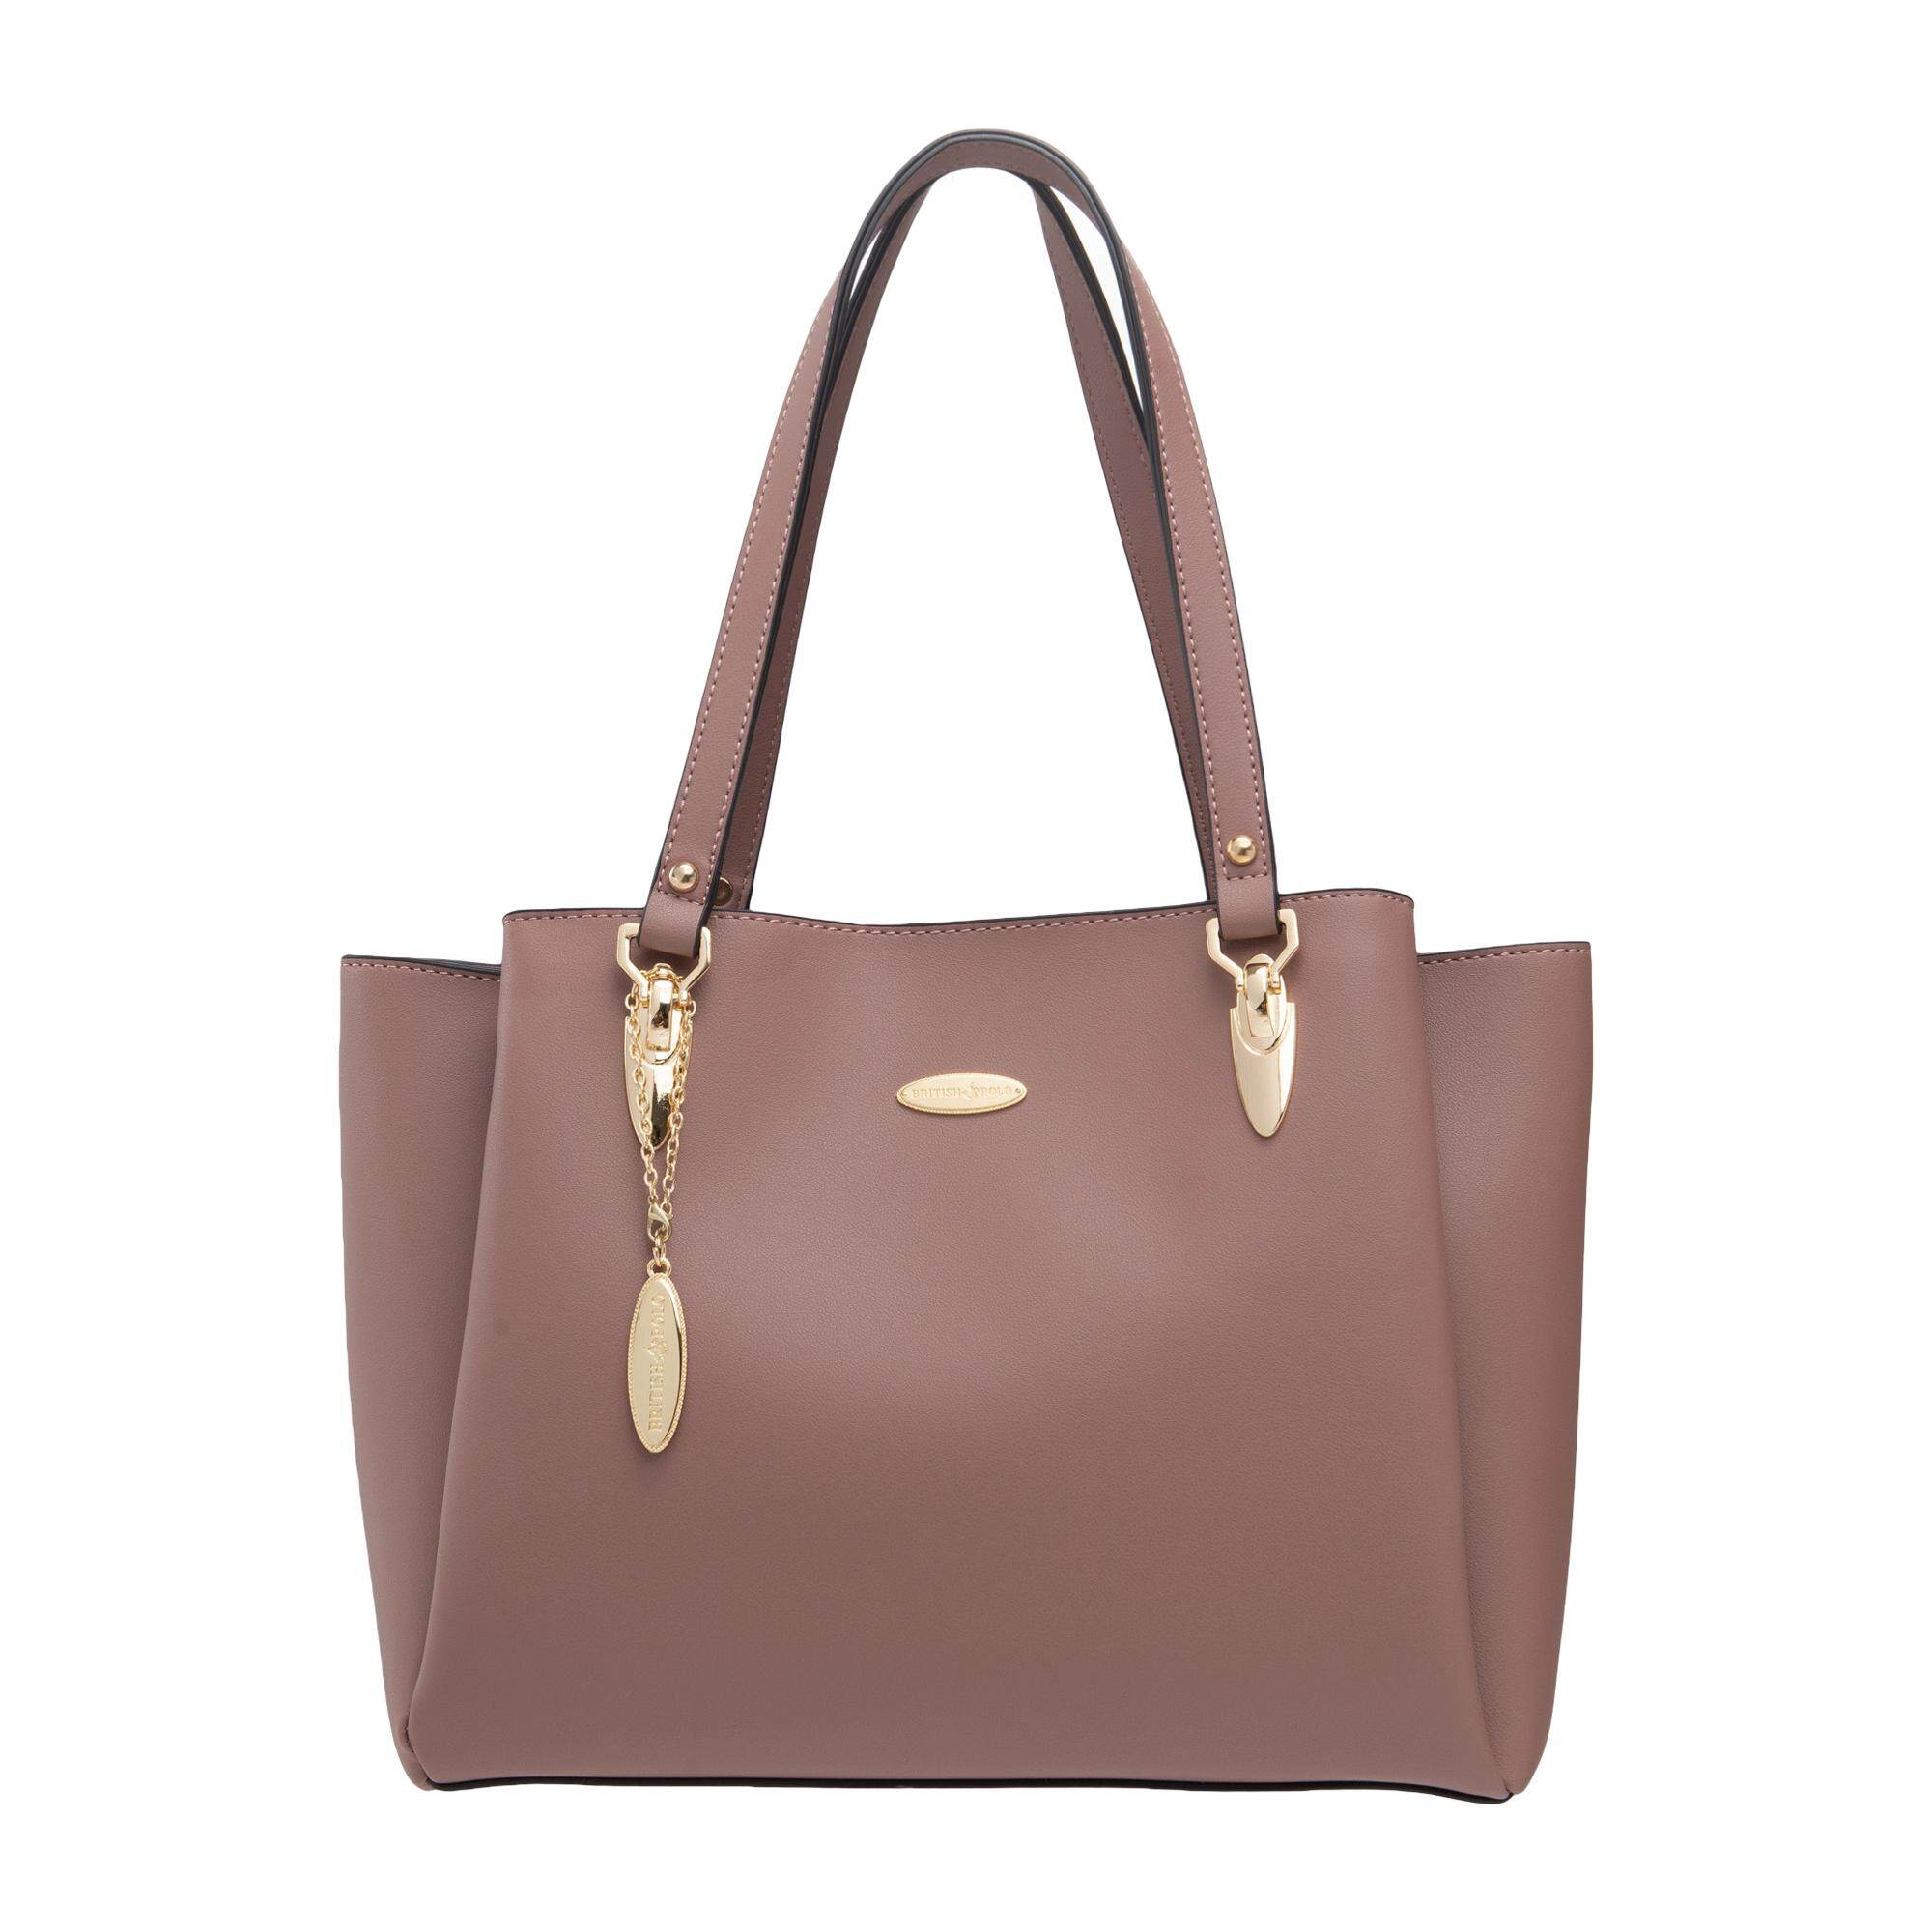 9d9d06c82146 British Polo Women Bags price in Malaysia - Best British Polo Women Bags